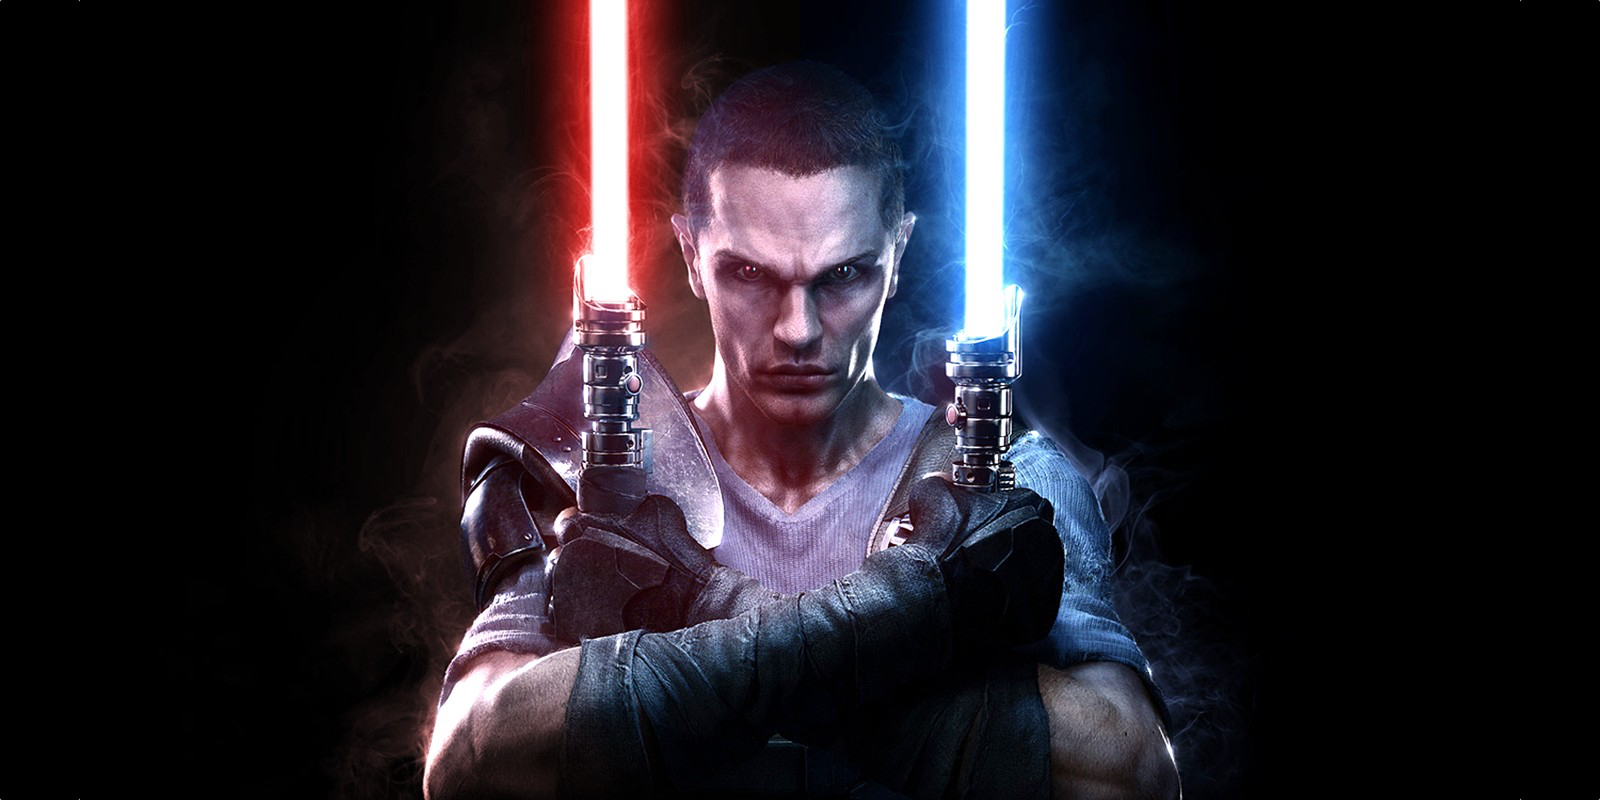 StarKiller Star Wars Force Awakens